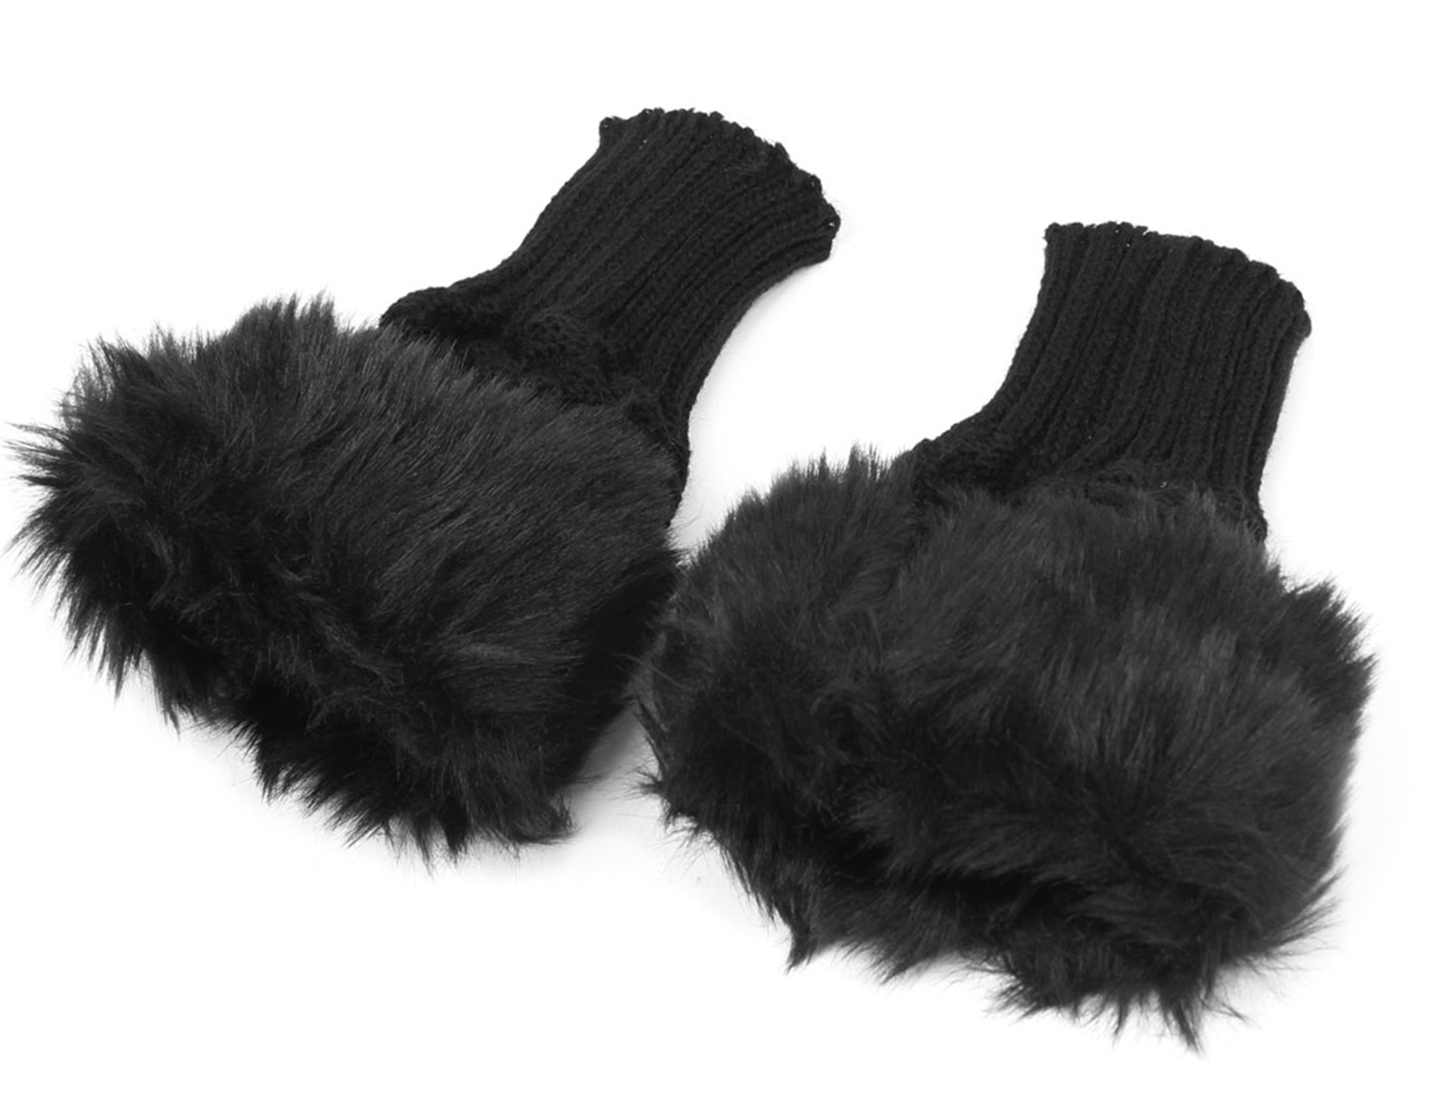 Unisex Winter Black Imitated Fur Decor Decor Palm Warm Knitted Fingerless Gloves Pair